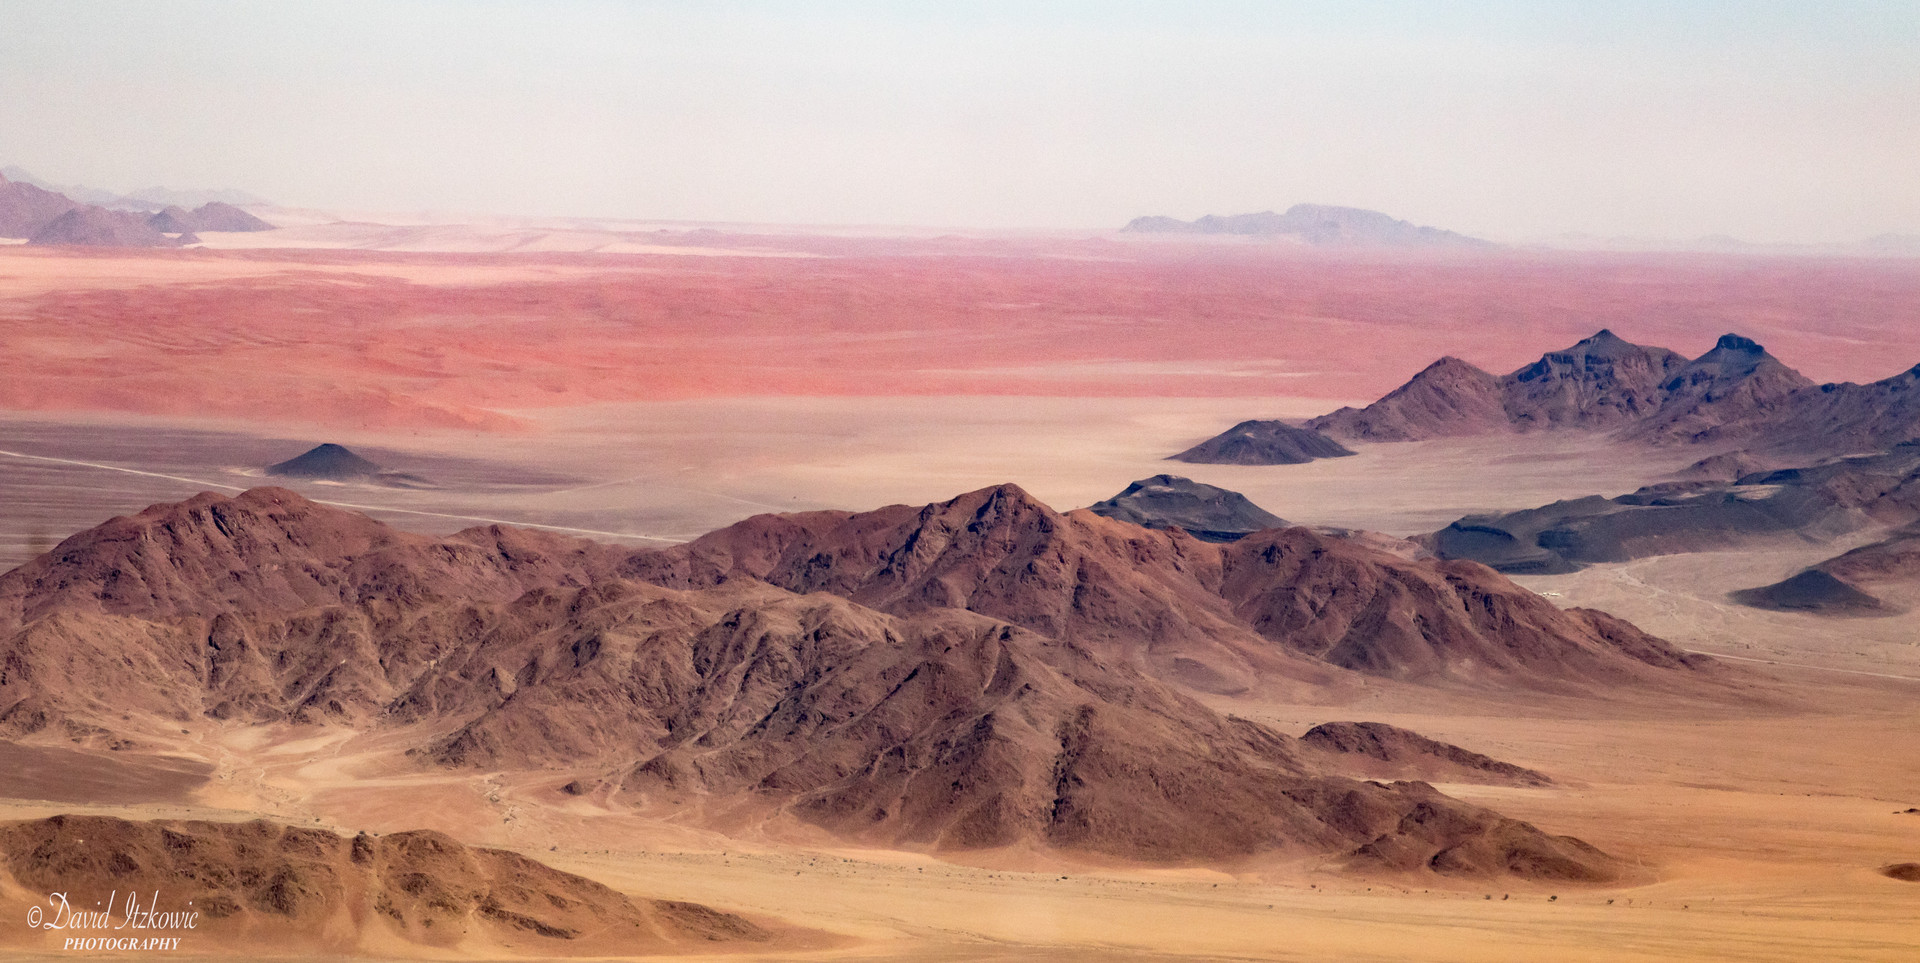 Mountains in the desert 1